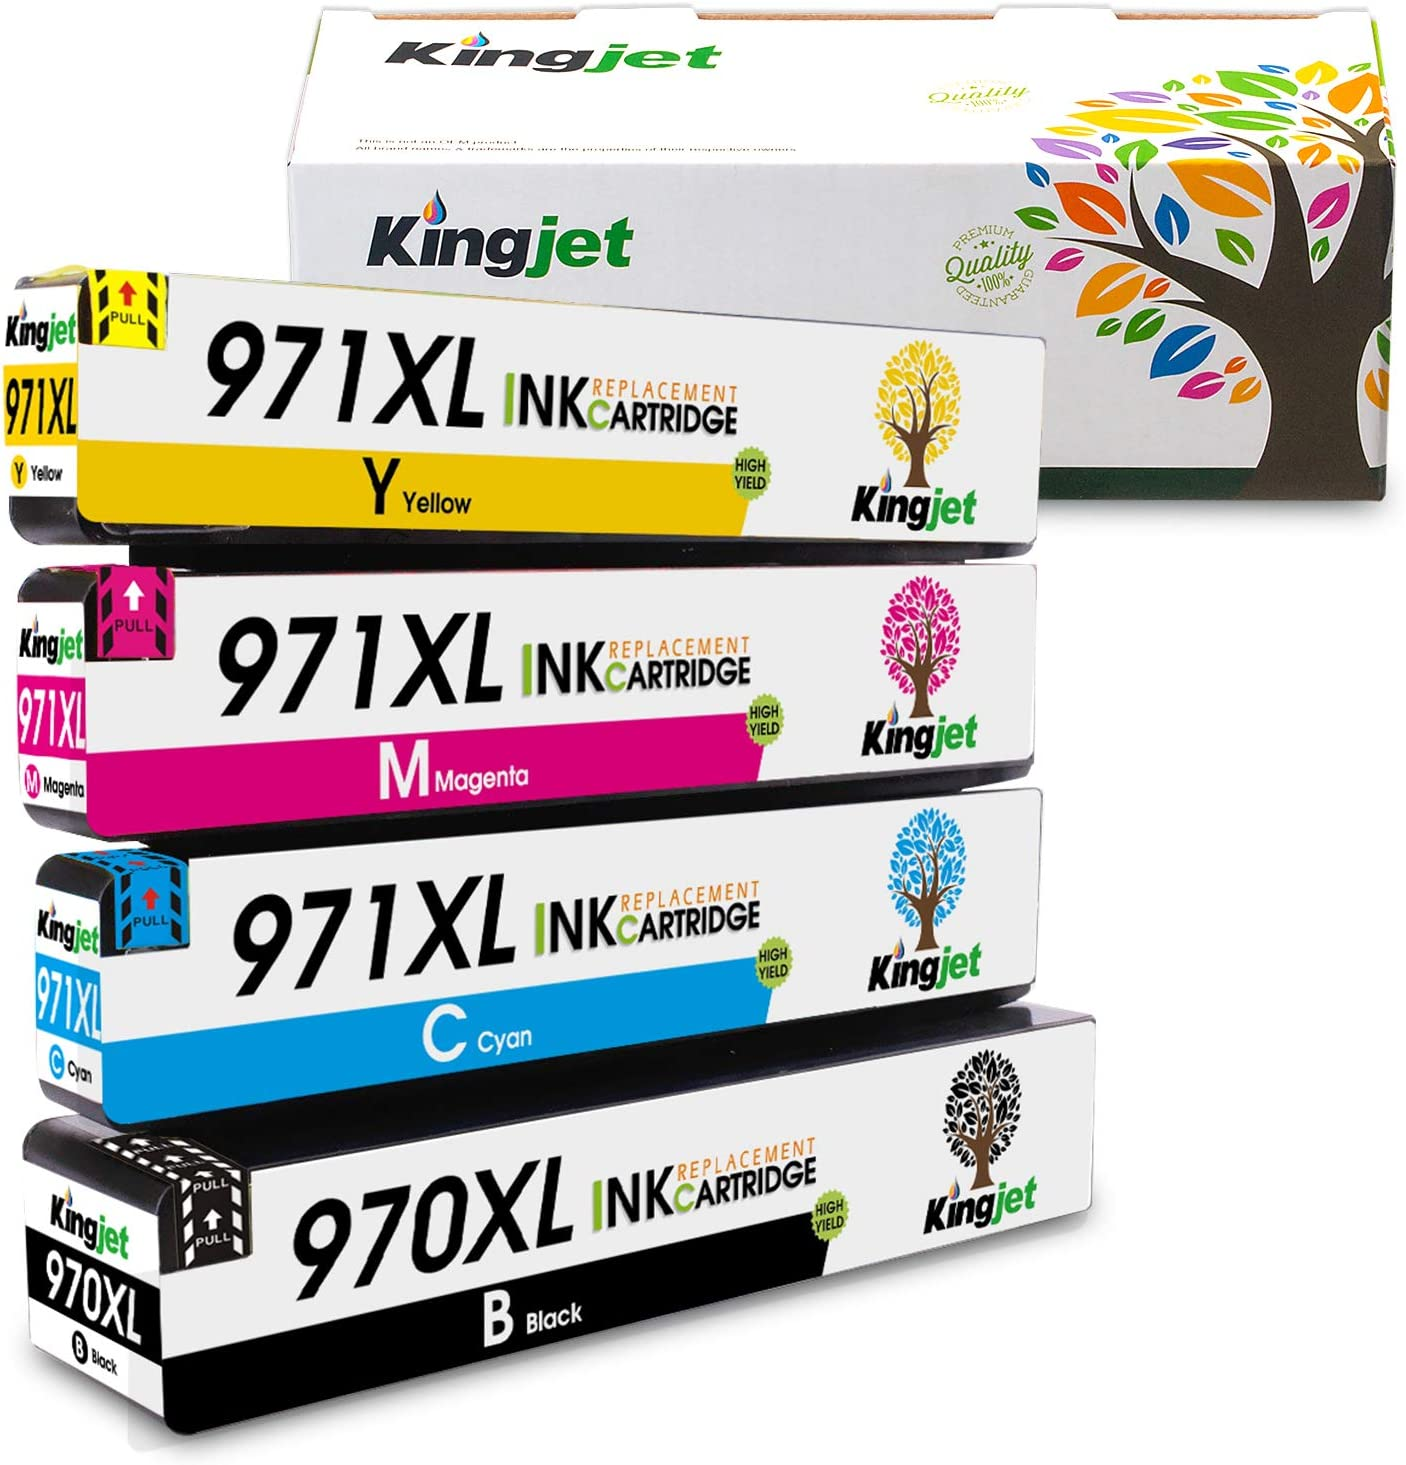 Kingjet Compatible Ink Cartridge Replacement for 970XL 971XL Work with Officejet Pro X576dw X451dn X451dw X476dw X476dn X551dw Printers, (4 Pack)